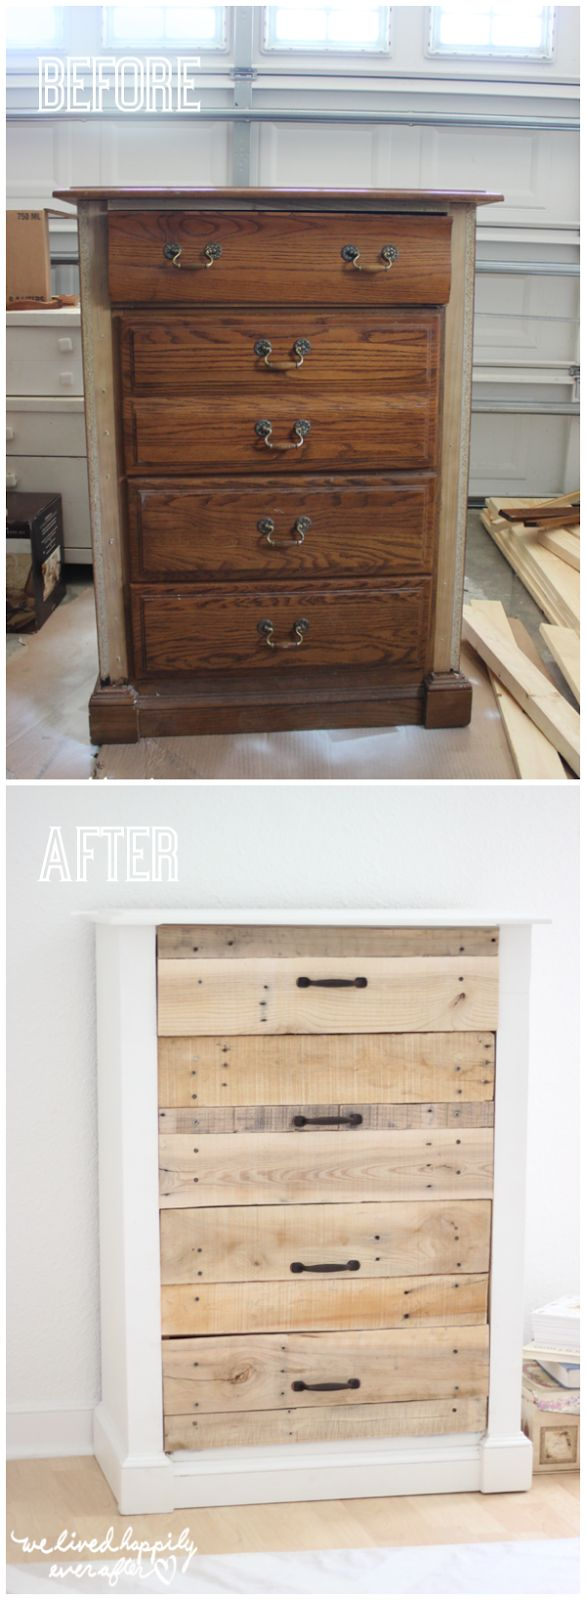 DIY Pallet Dresser- this is such an amazing before and after and would be so simple to do!